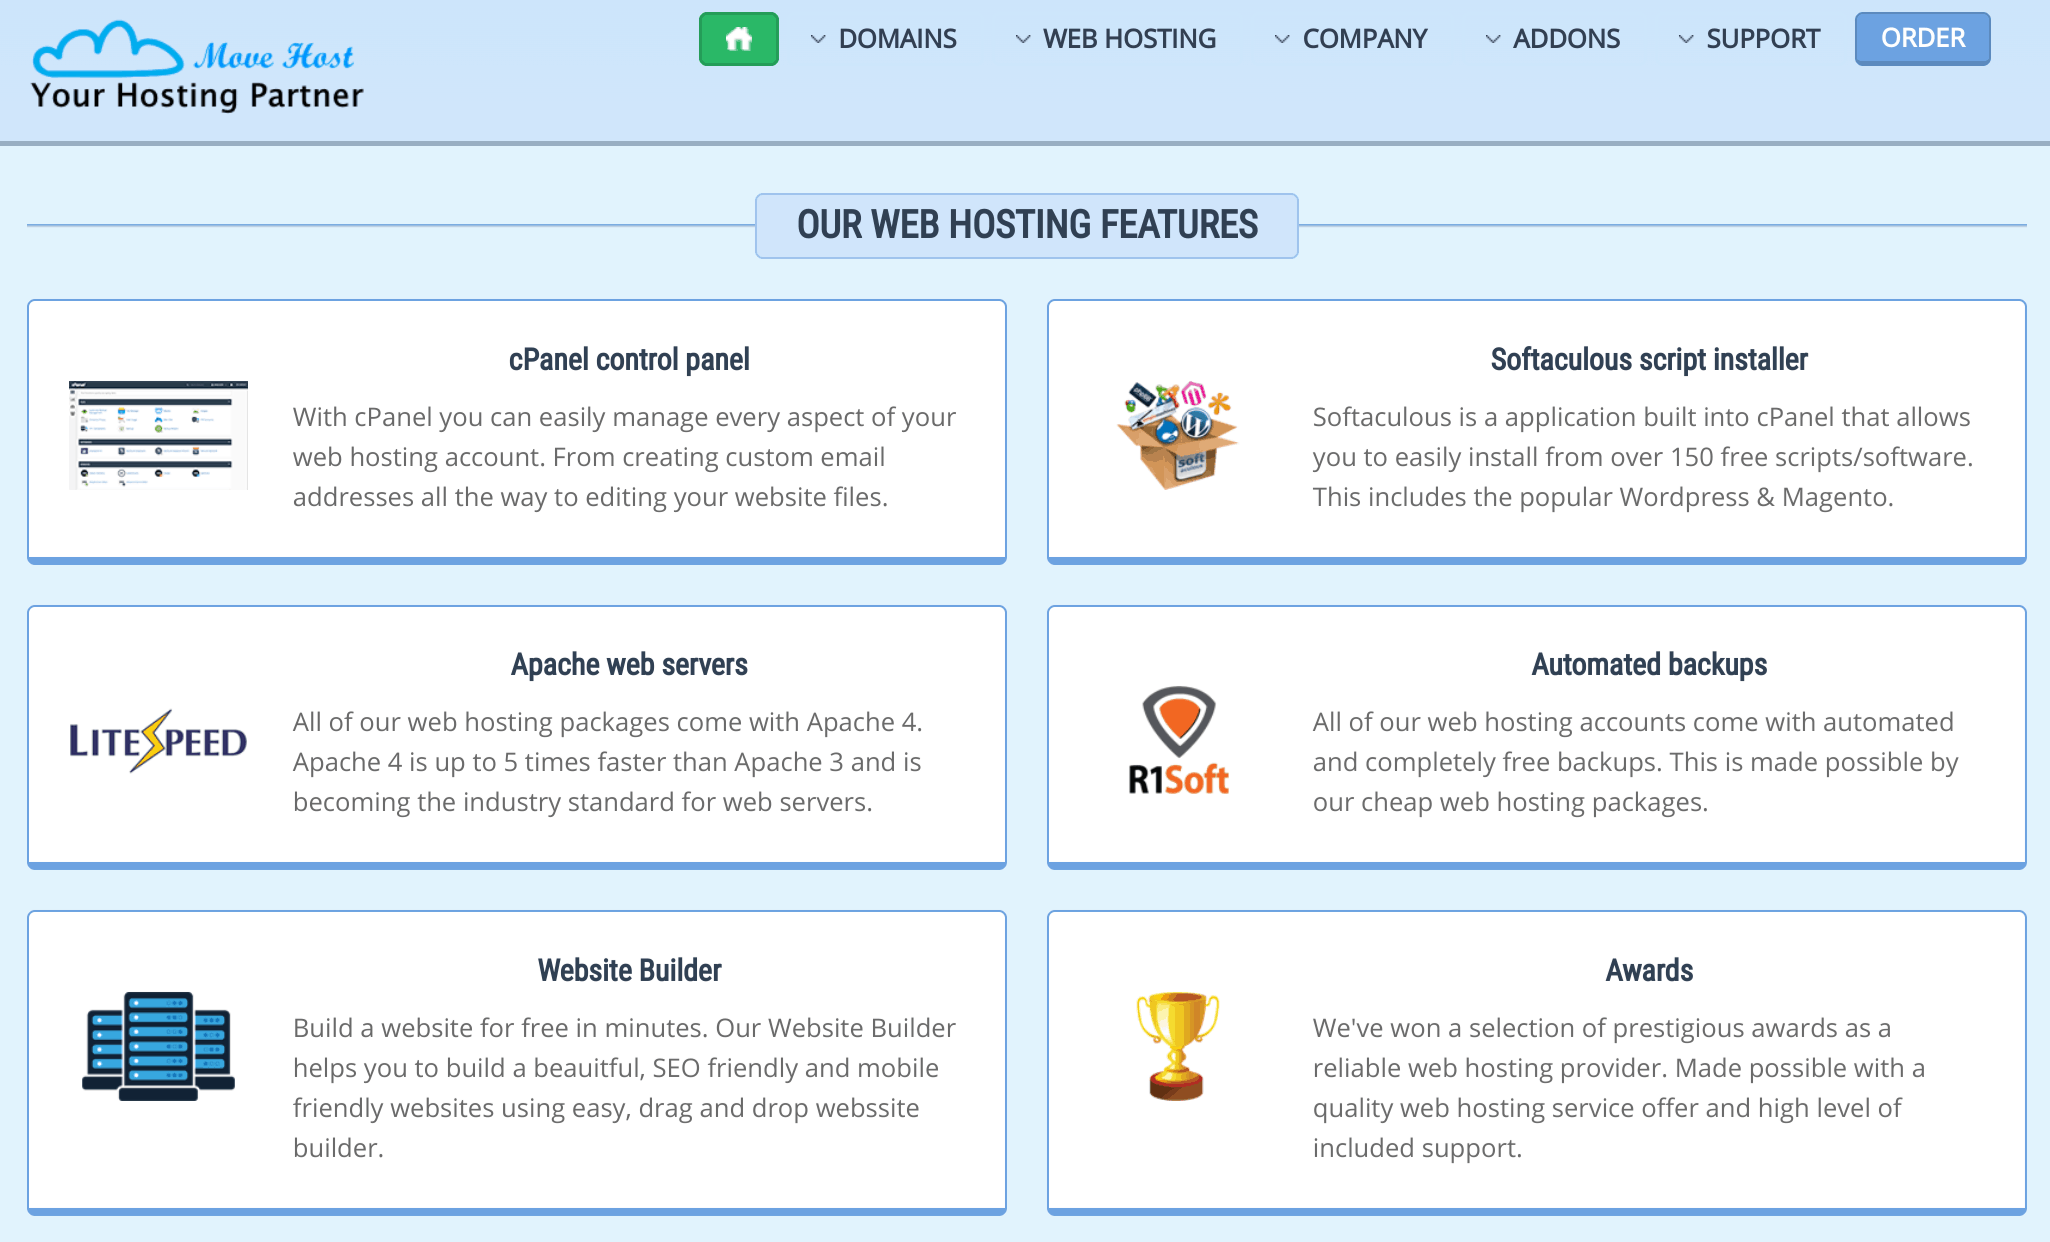 movehost features